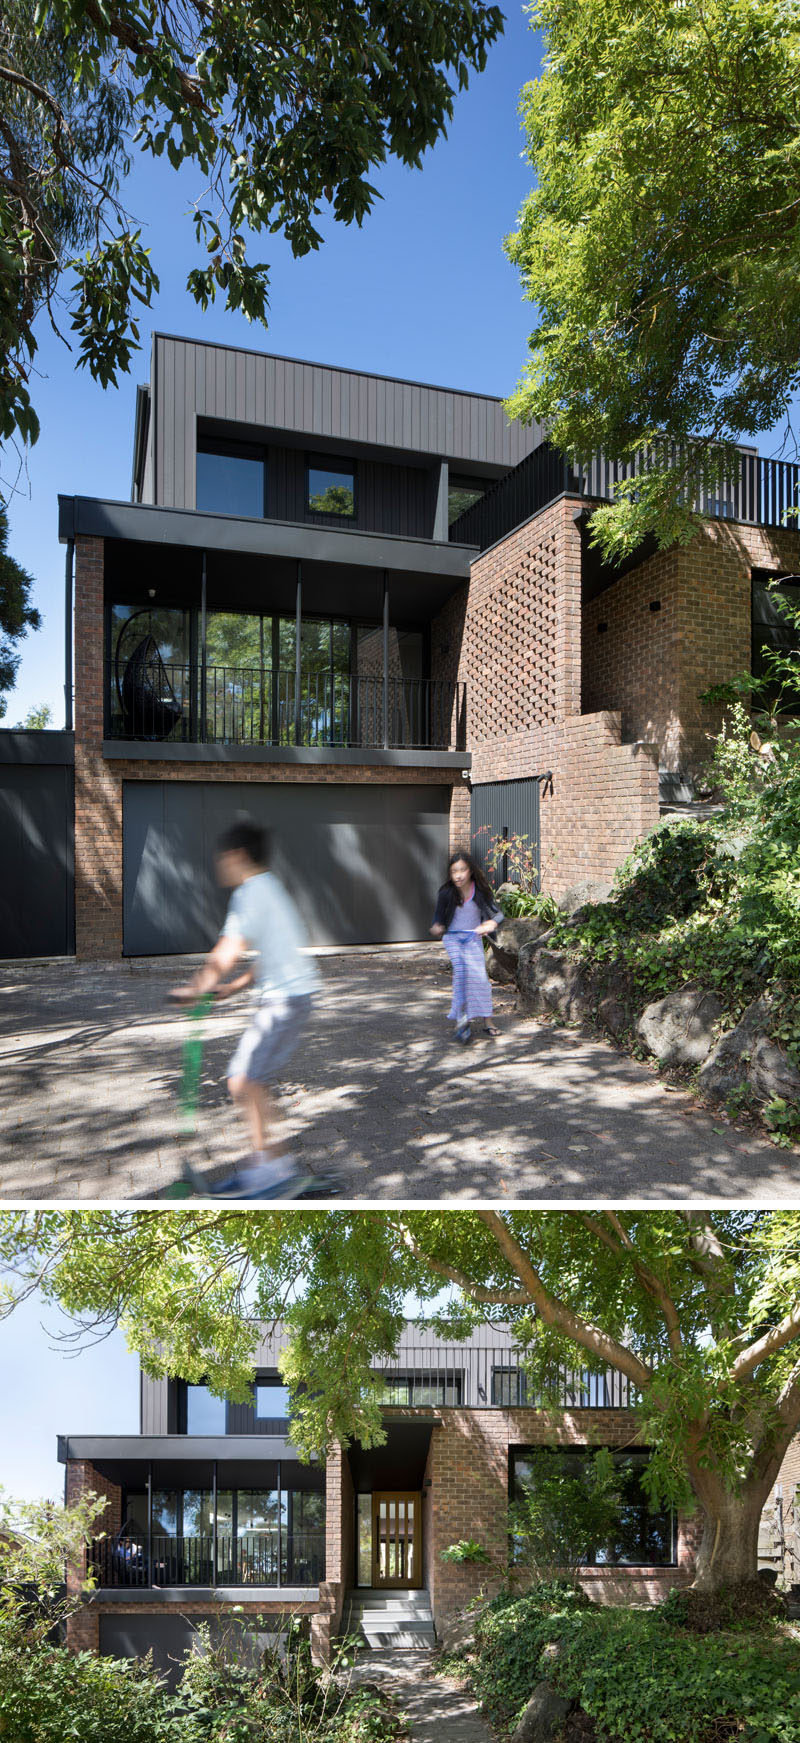 This renovated house has used bricks were salvaged during the demolition to create hit-and-miss brickwork that added privacy for the entryway and blocked off the view into the house from the street.